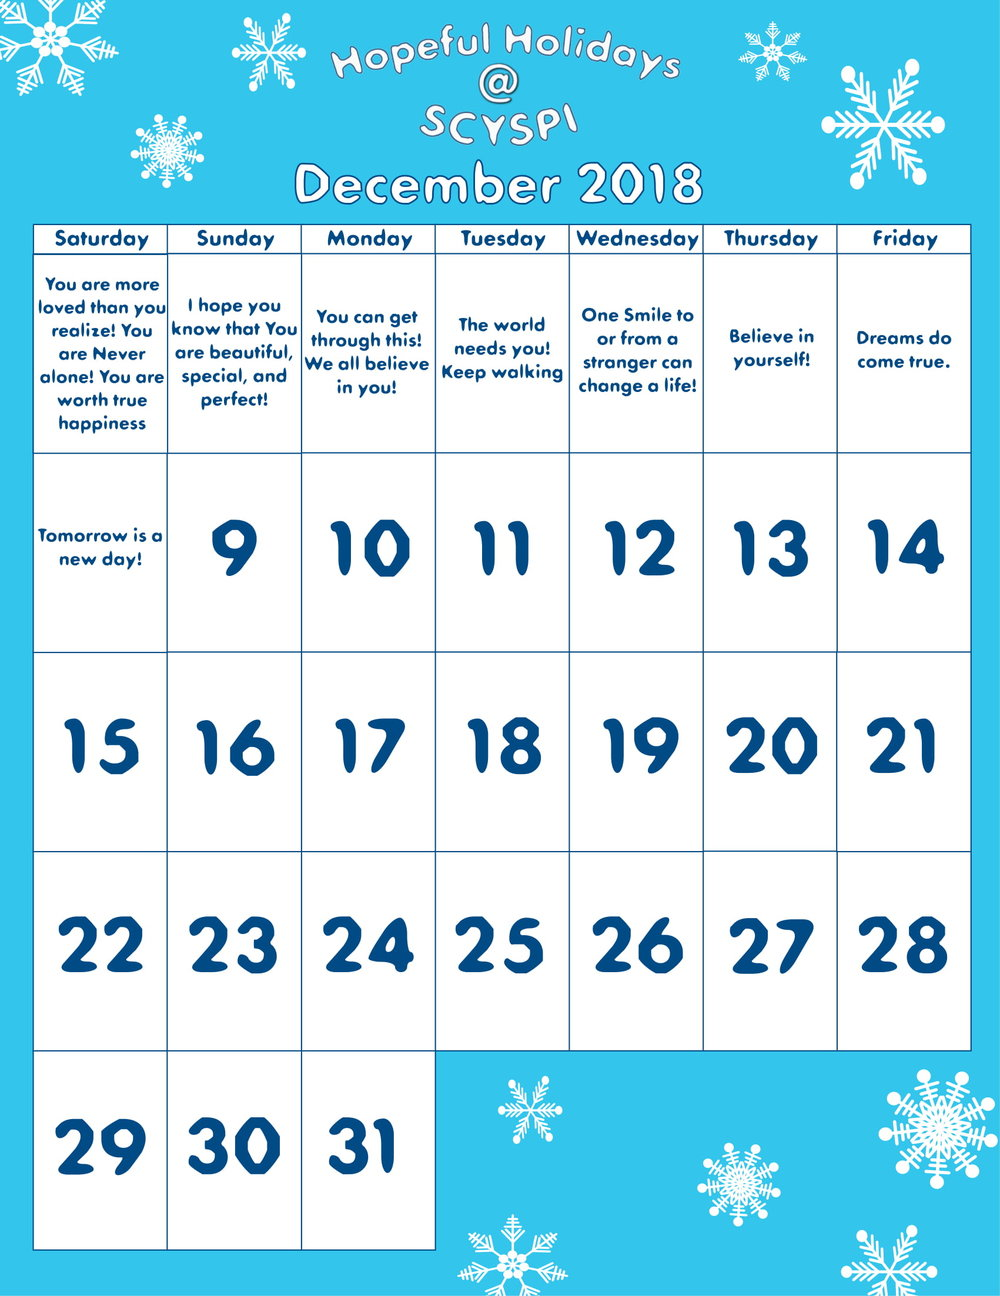 hopeful holidays calendar dec 8th-1.jpg